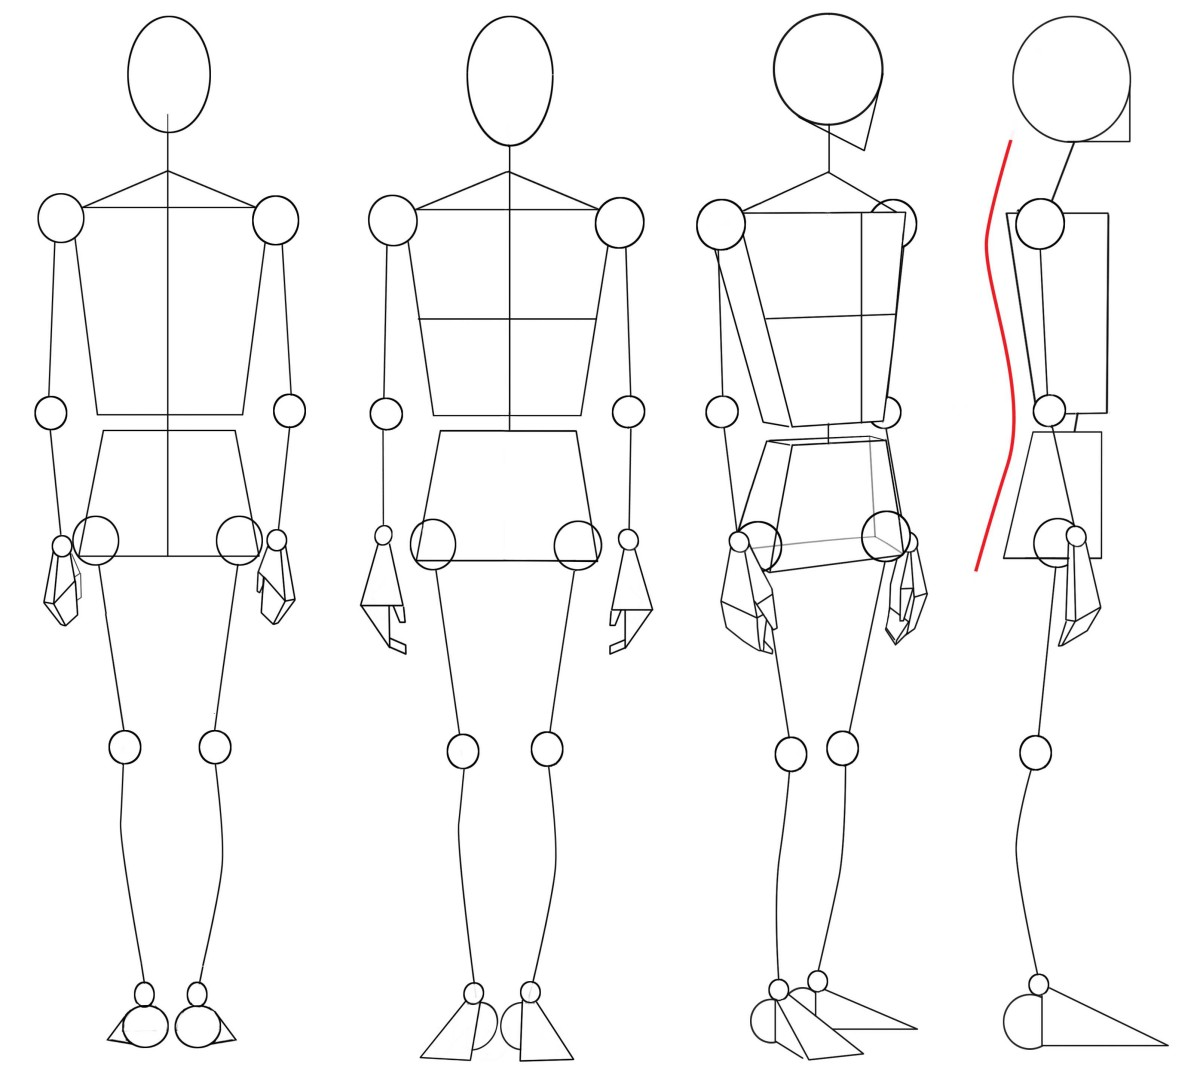 drawing-the-human-figure-angles-proportions